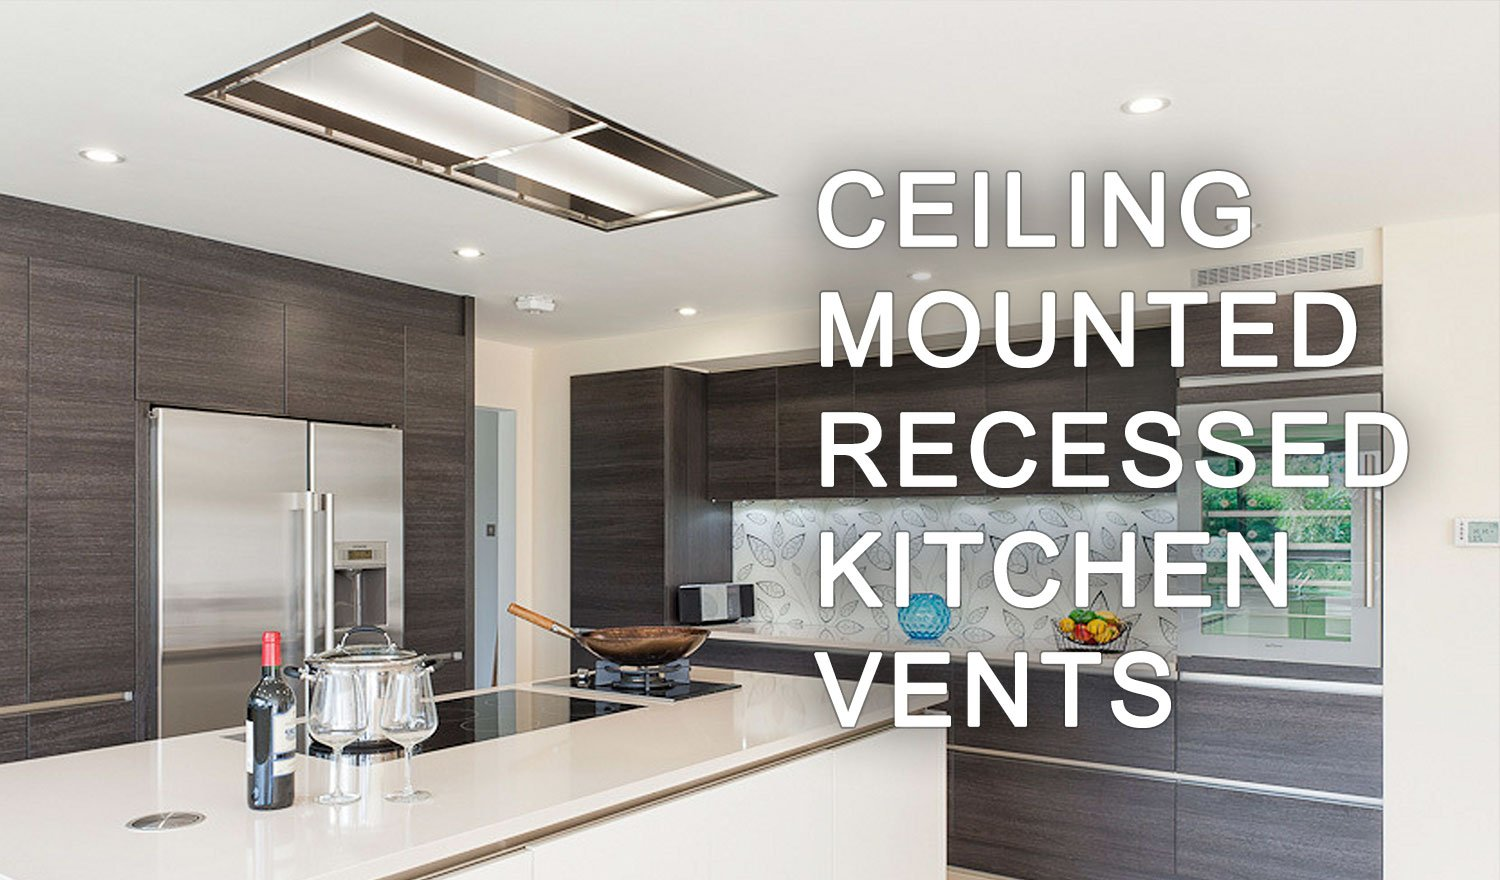 Ceiling-Mounted Recessed Kitchen Vents